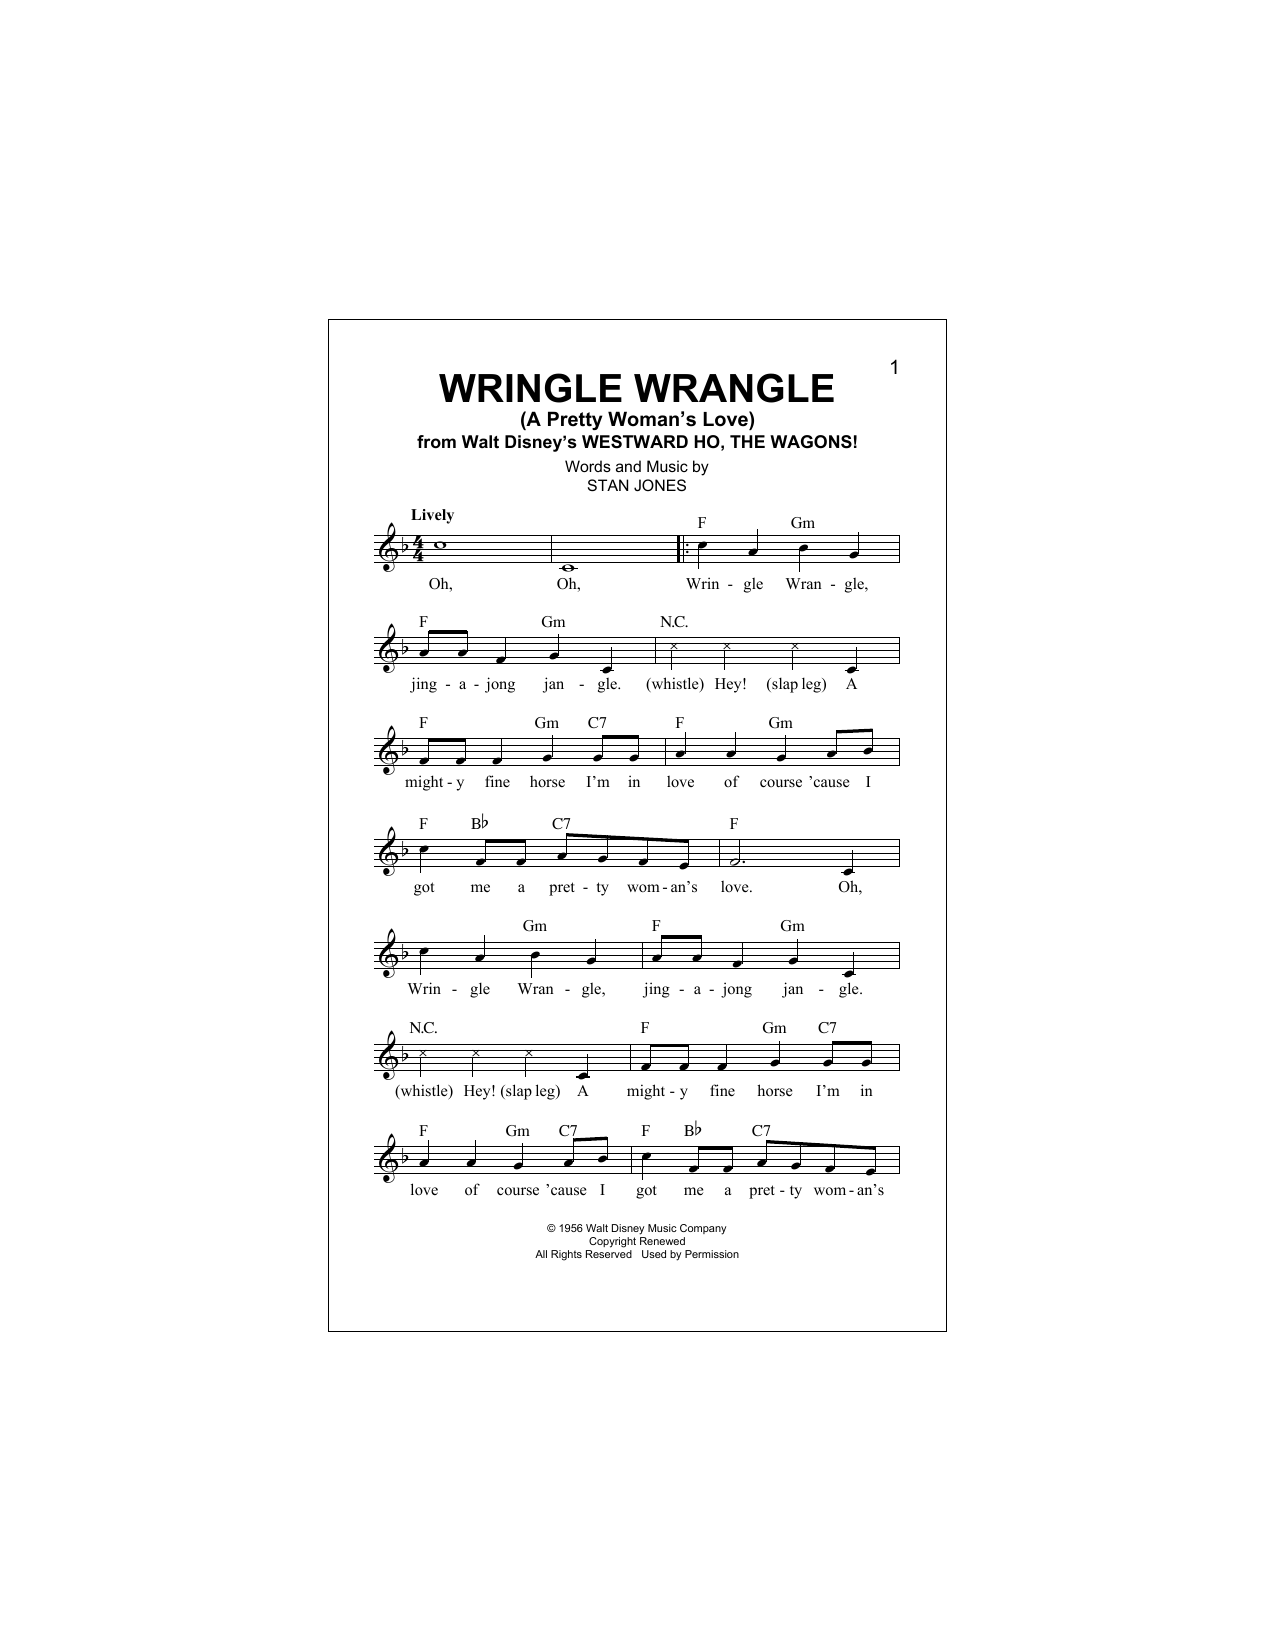 Wringle Wrangle Sheet Music